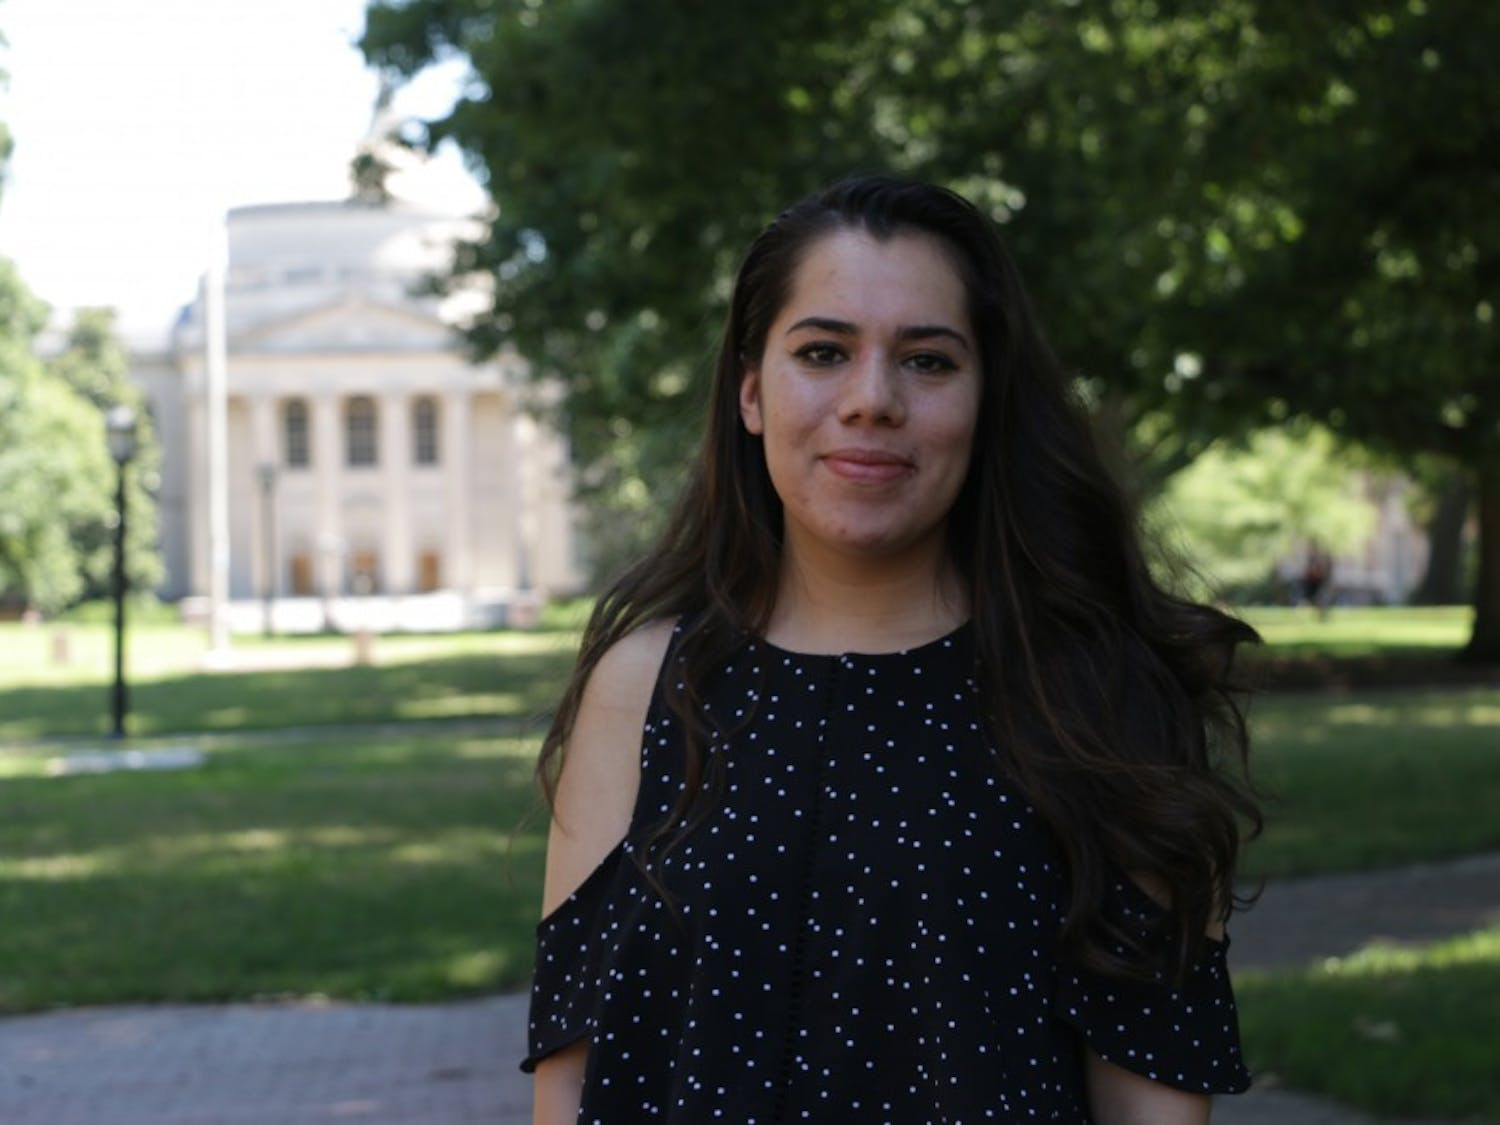 Jessica Mencia the SUIE (Students United for Immigrant Equality) Co-Chair